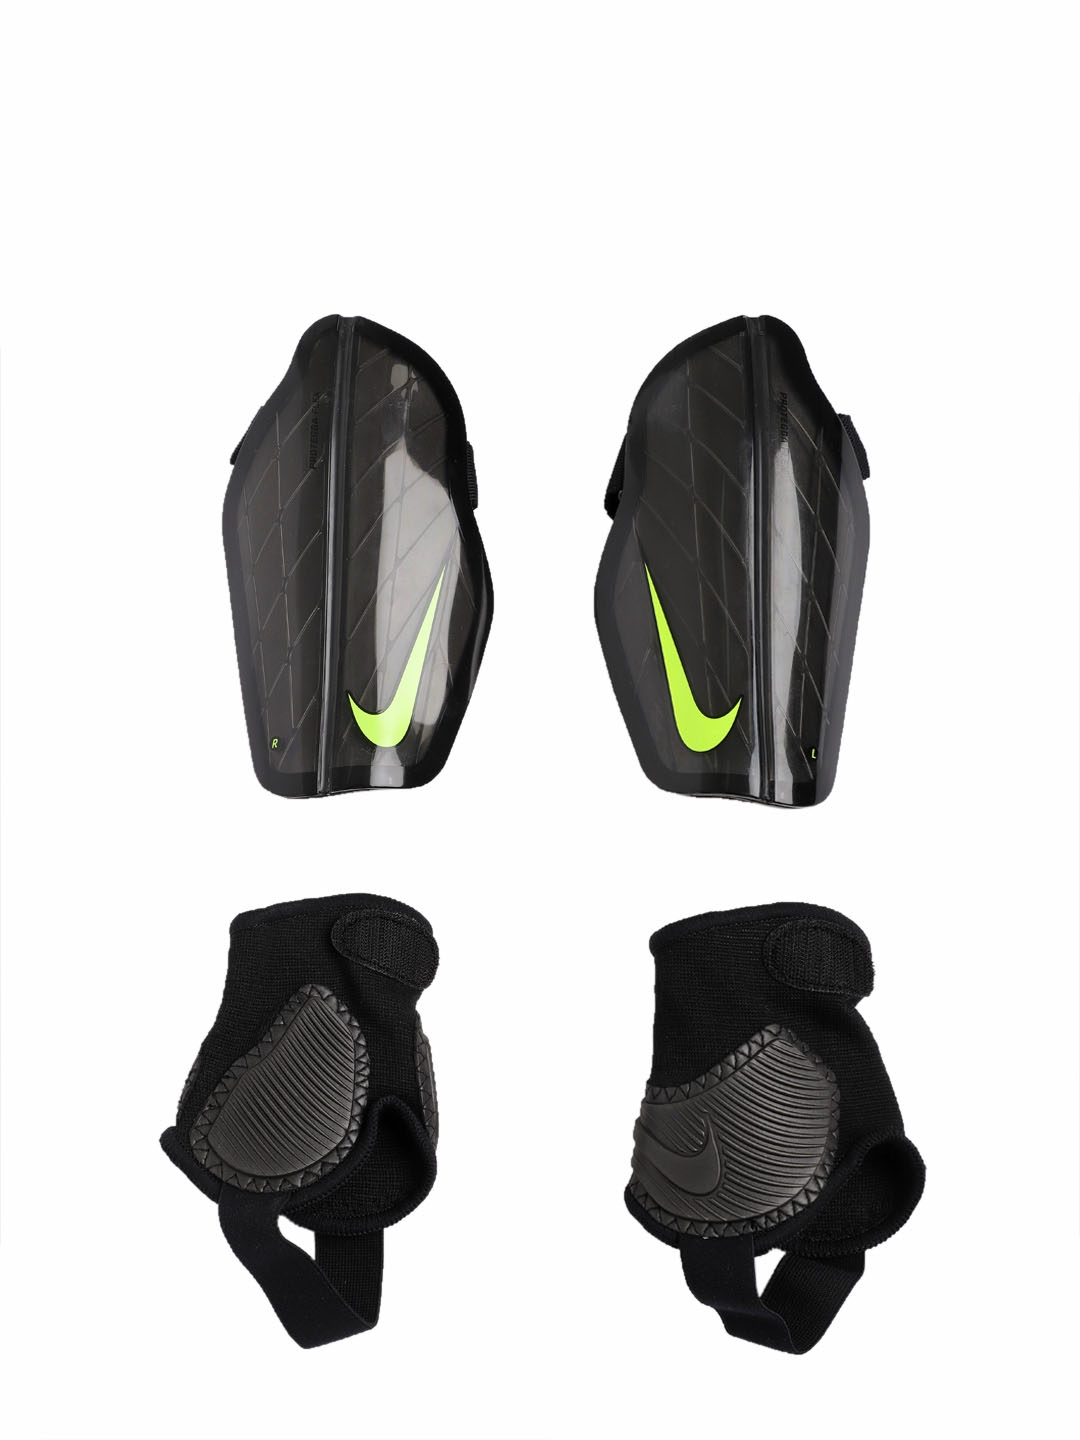 7be110160ae6 Buy Nike Unisex Black Protegga Flex Football Shin Guards - Sports ...